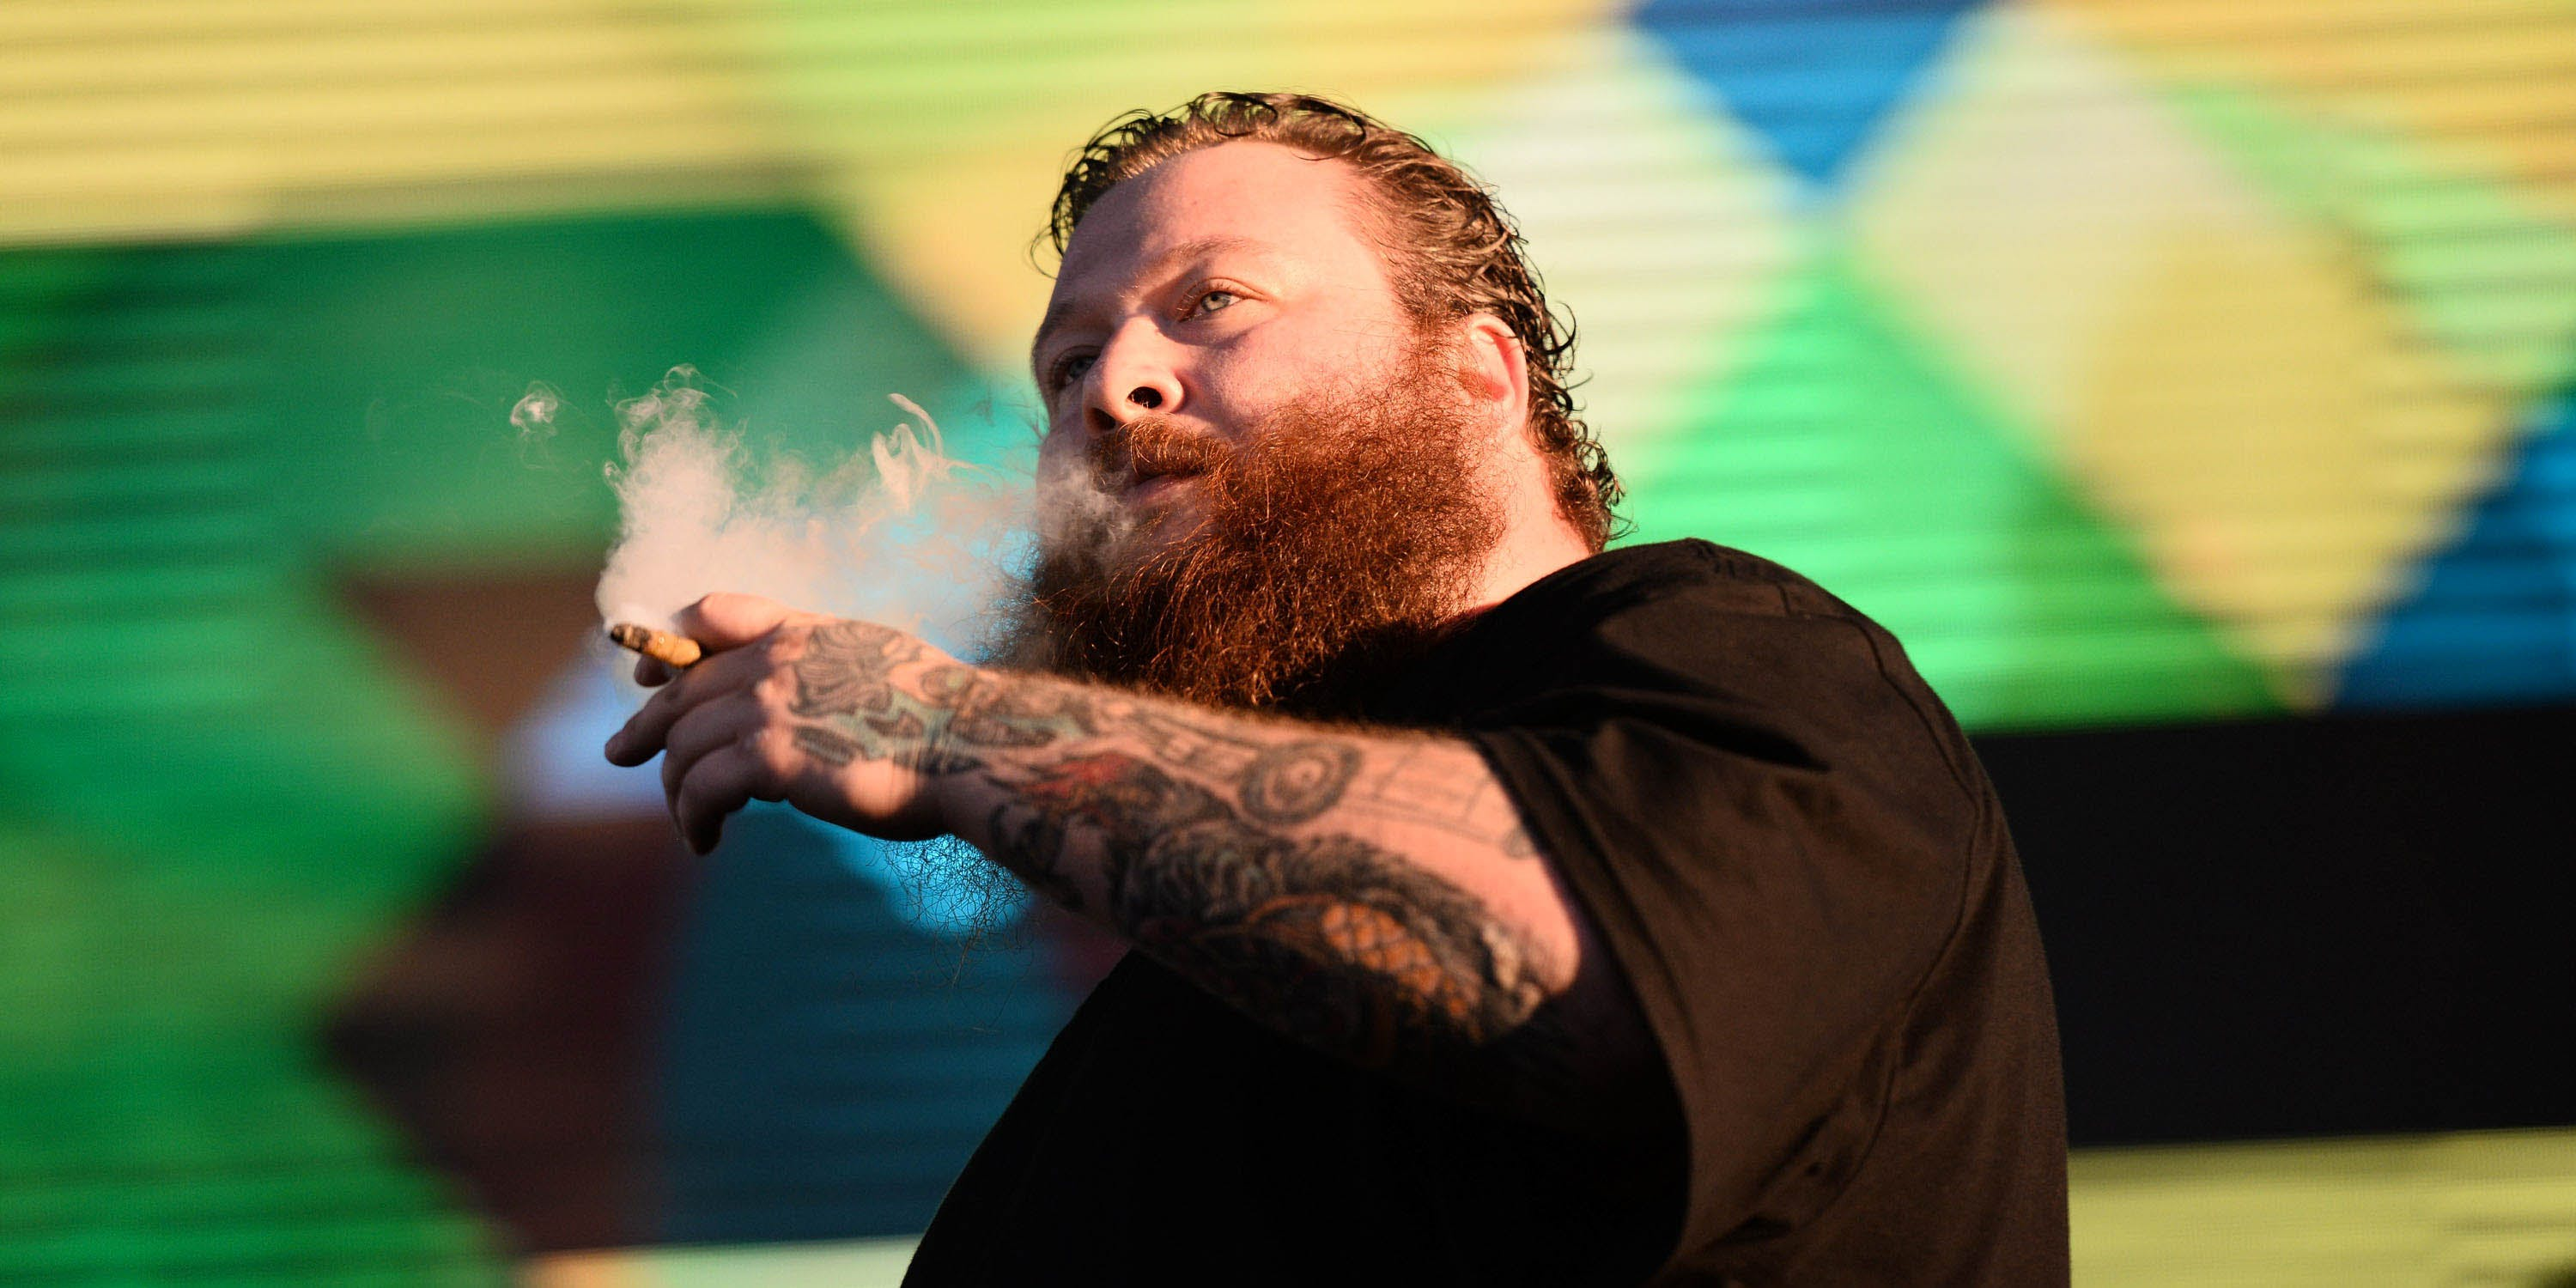 LOS ANGELES, CA - NOVEMBER 08: Rapper Action Bronson smokes a blunt onstage at the 3rd Annual Camp Flog Gnaw Carnival at the Los Angeles Coliseum on November 8, 2014 in Los Angeles, California. (Photo by Scott Dudelson via Getty Images)